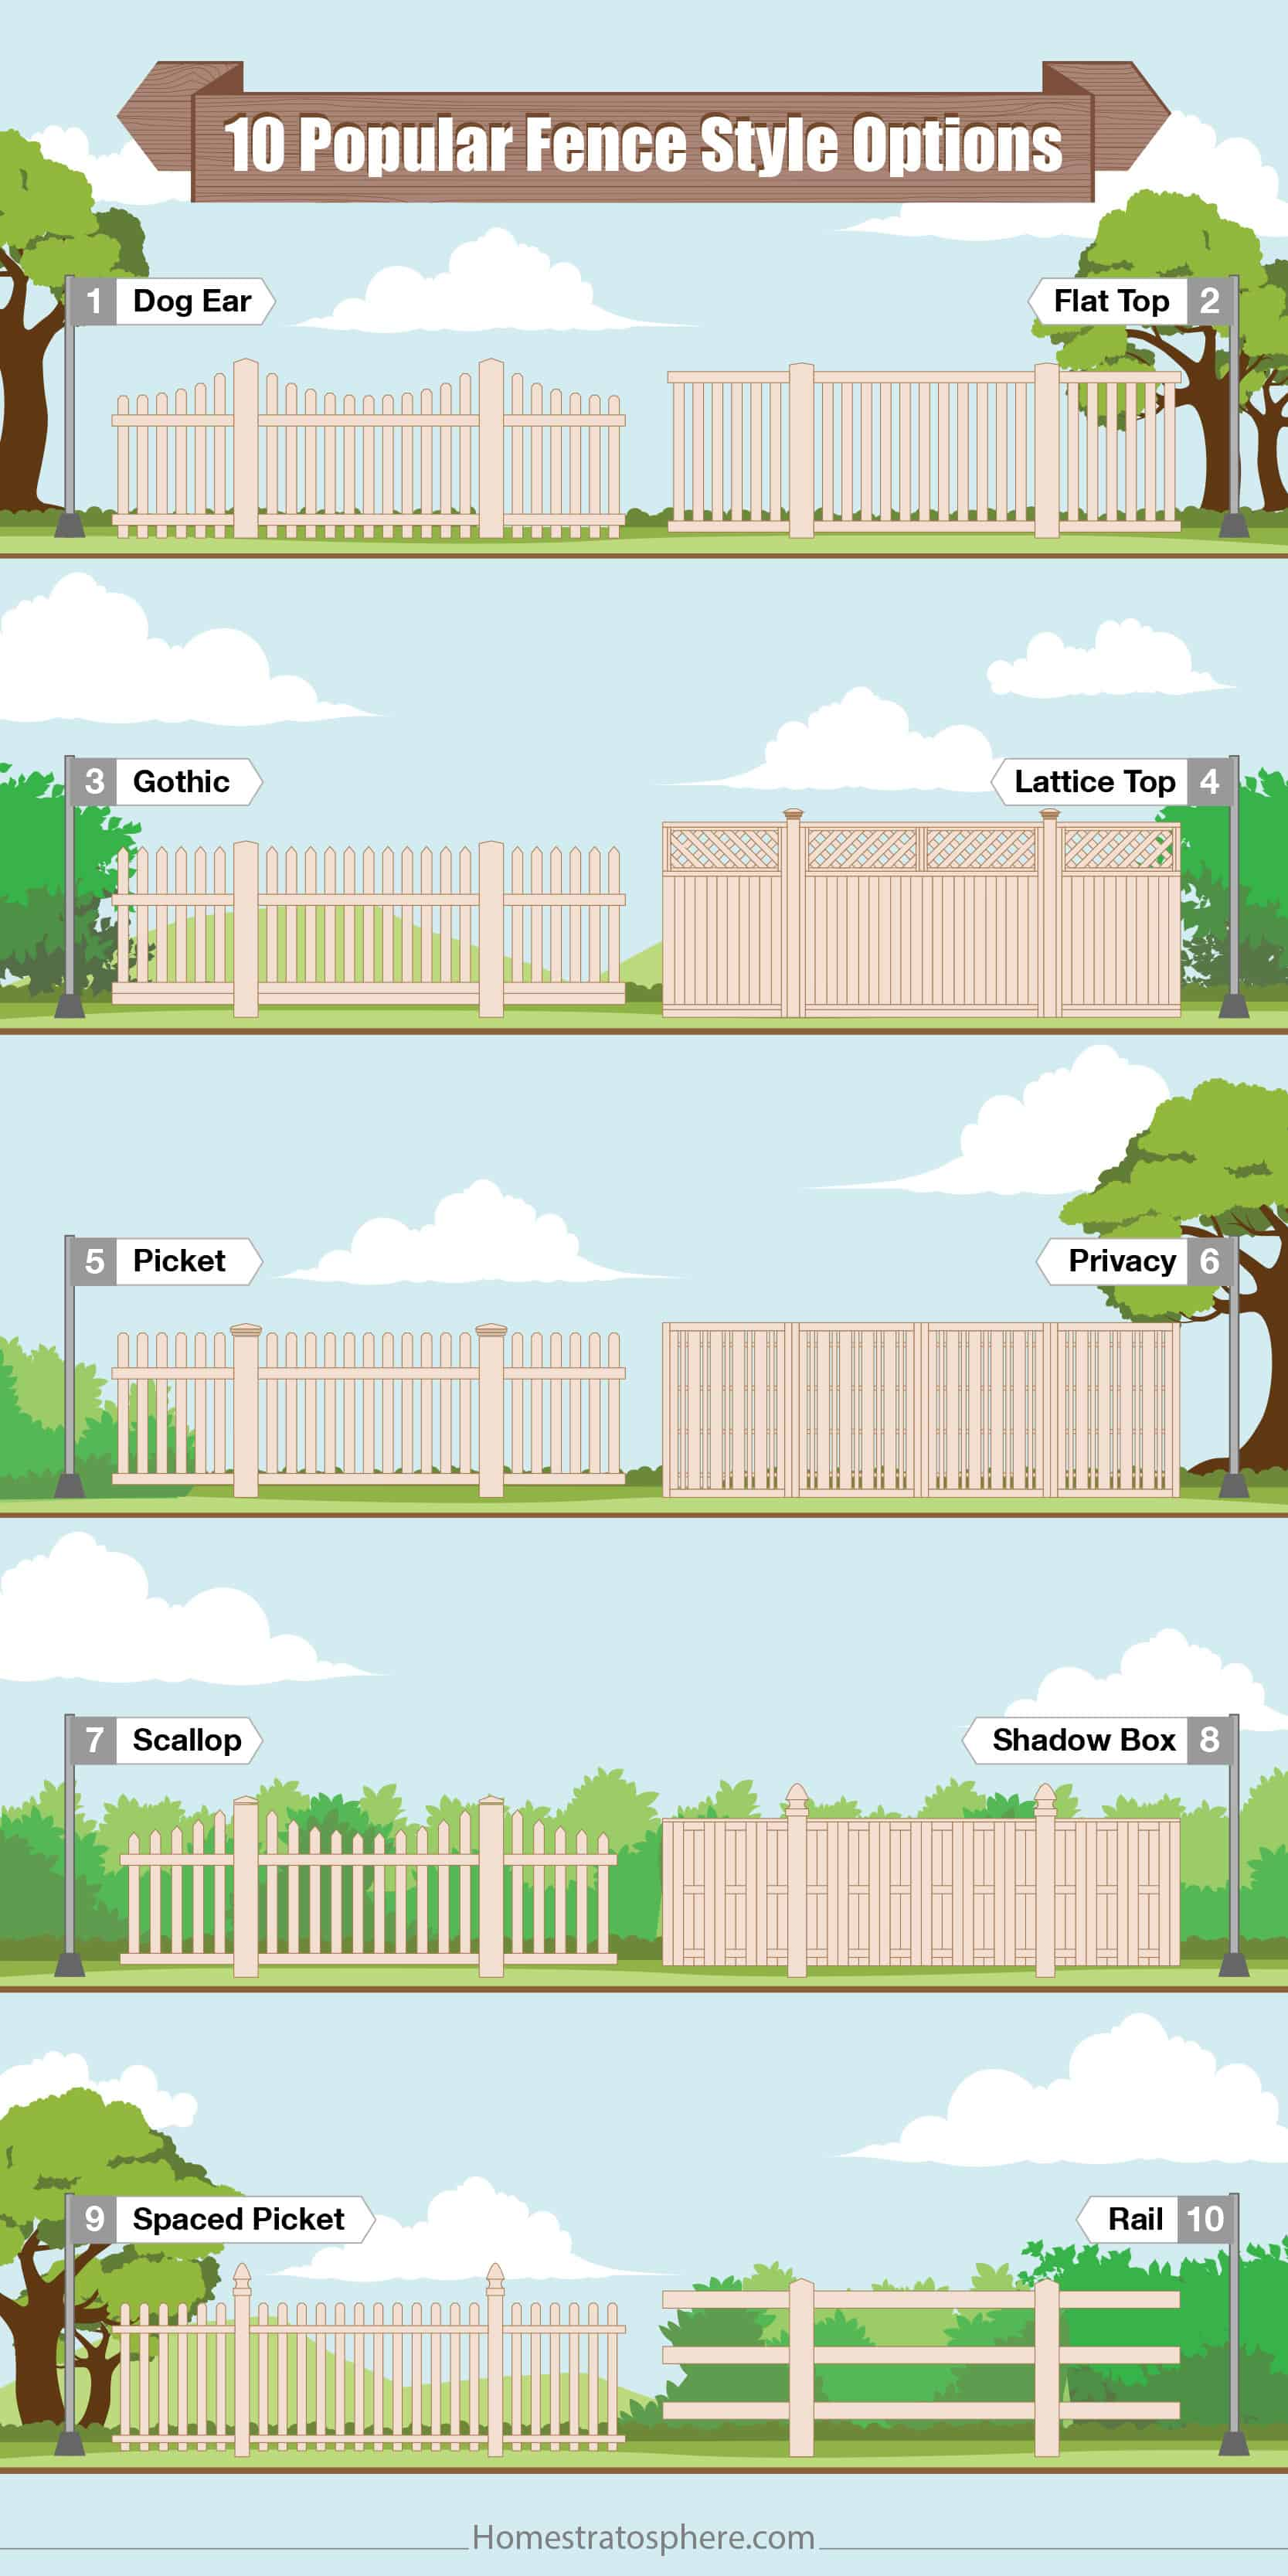 Fence design styles illustrated chart